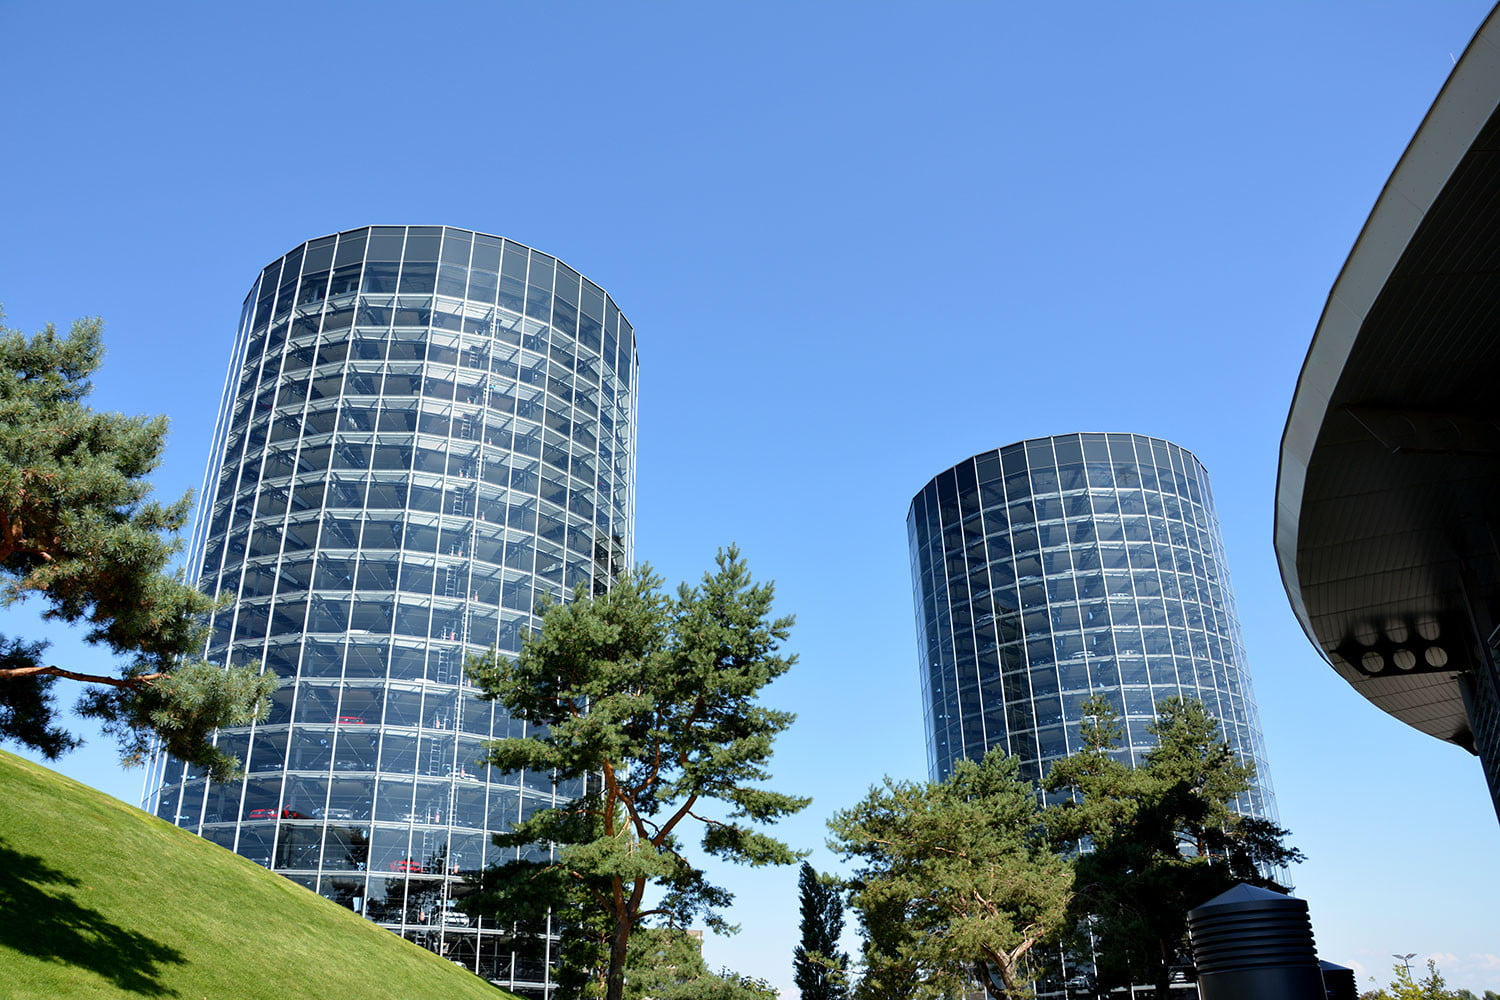 Volkswagen S Autostadt Car Towers Best Car Buildings Ever